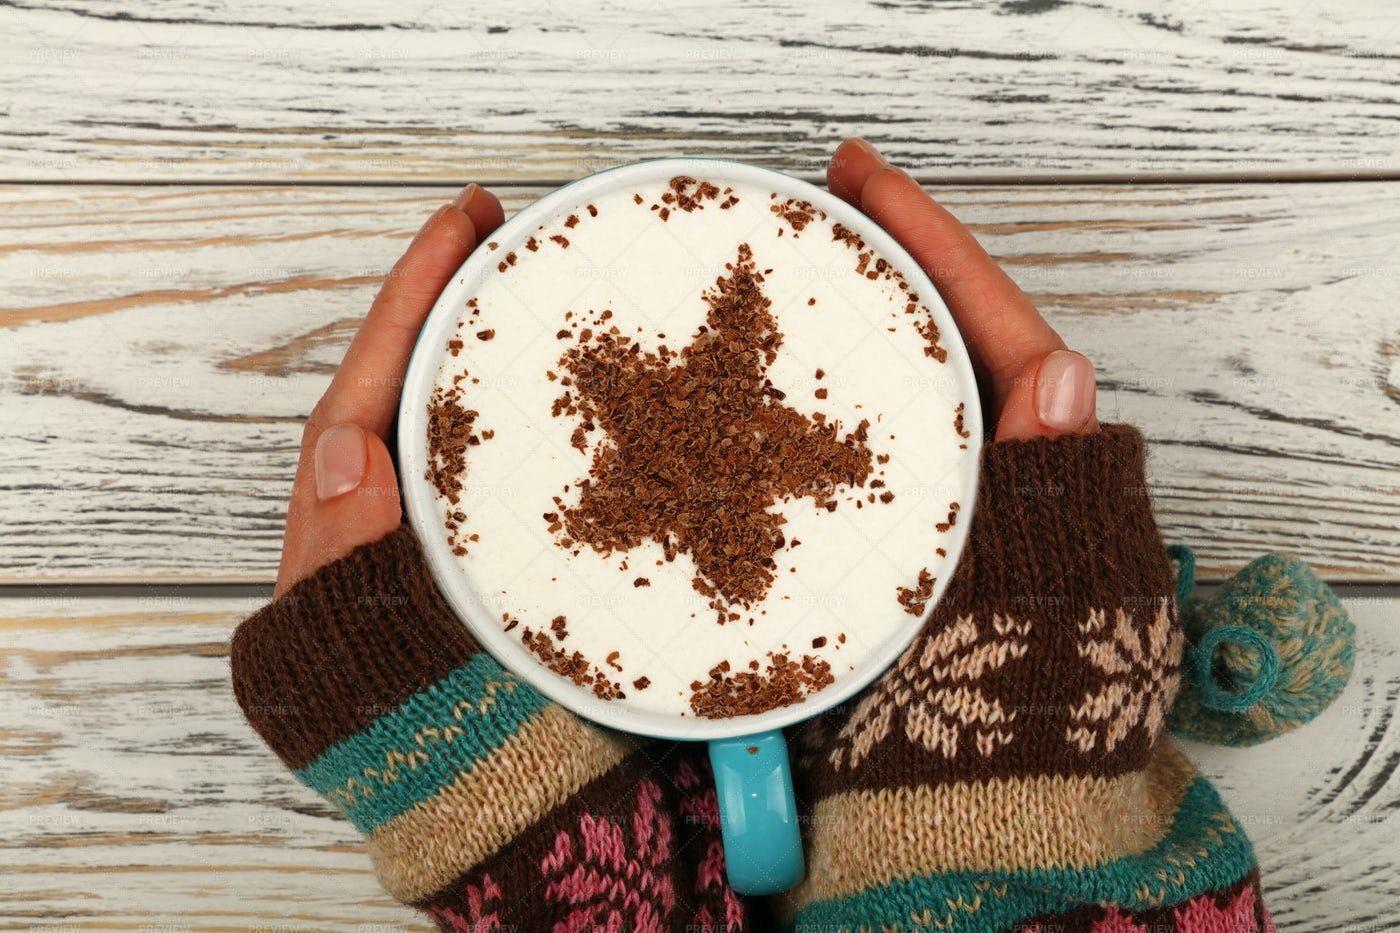 Hands Hold A Cappuccino Cup: Stock Photos